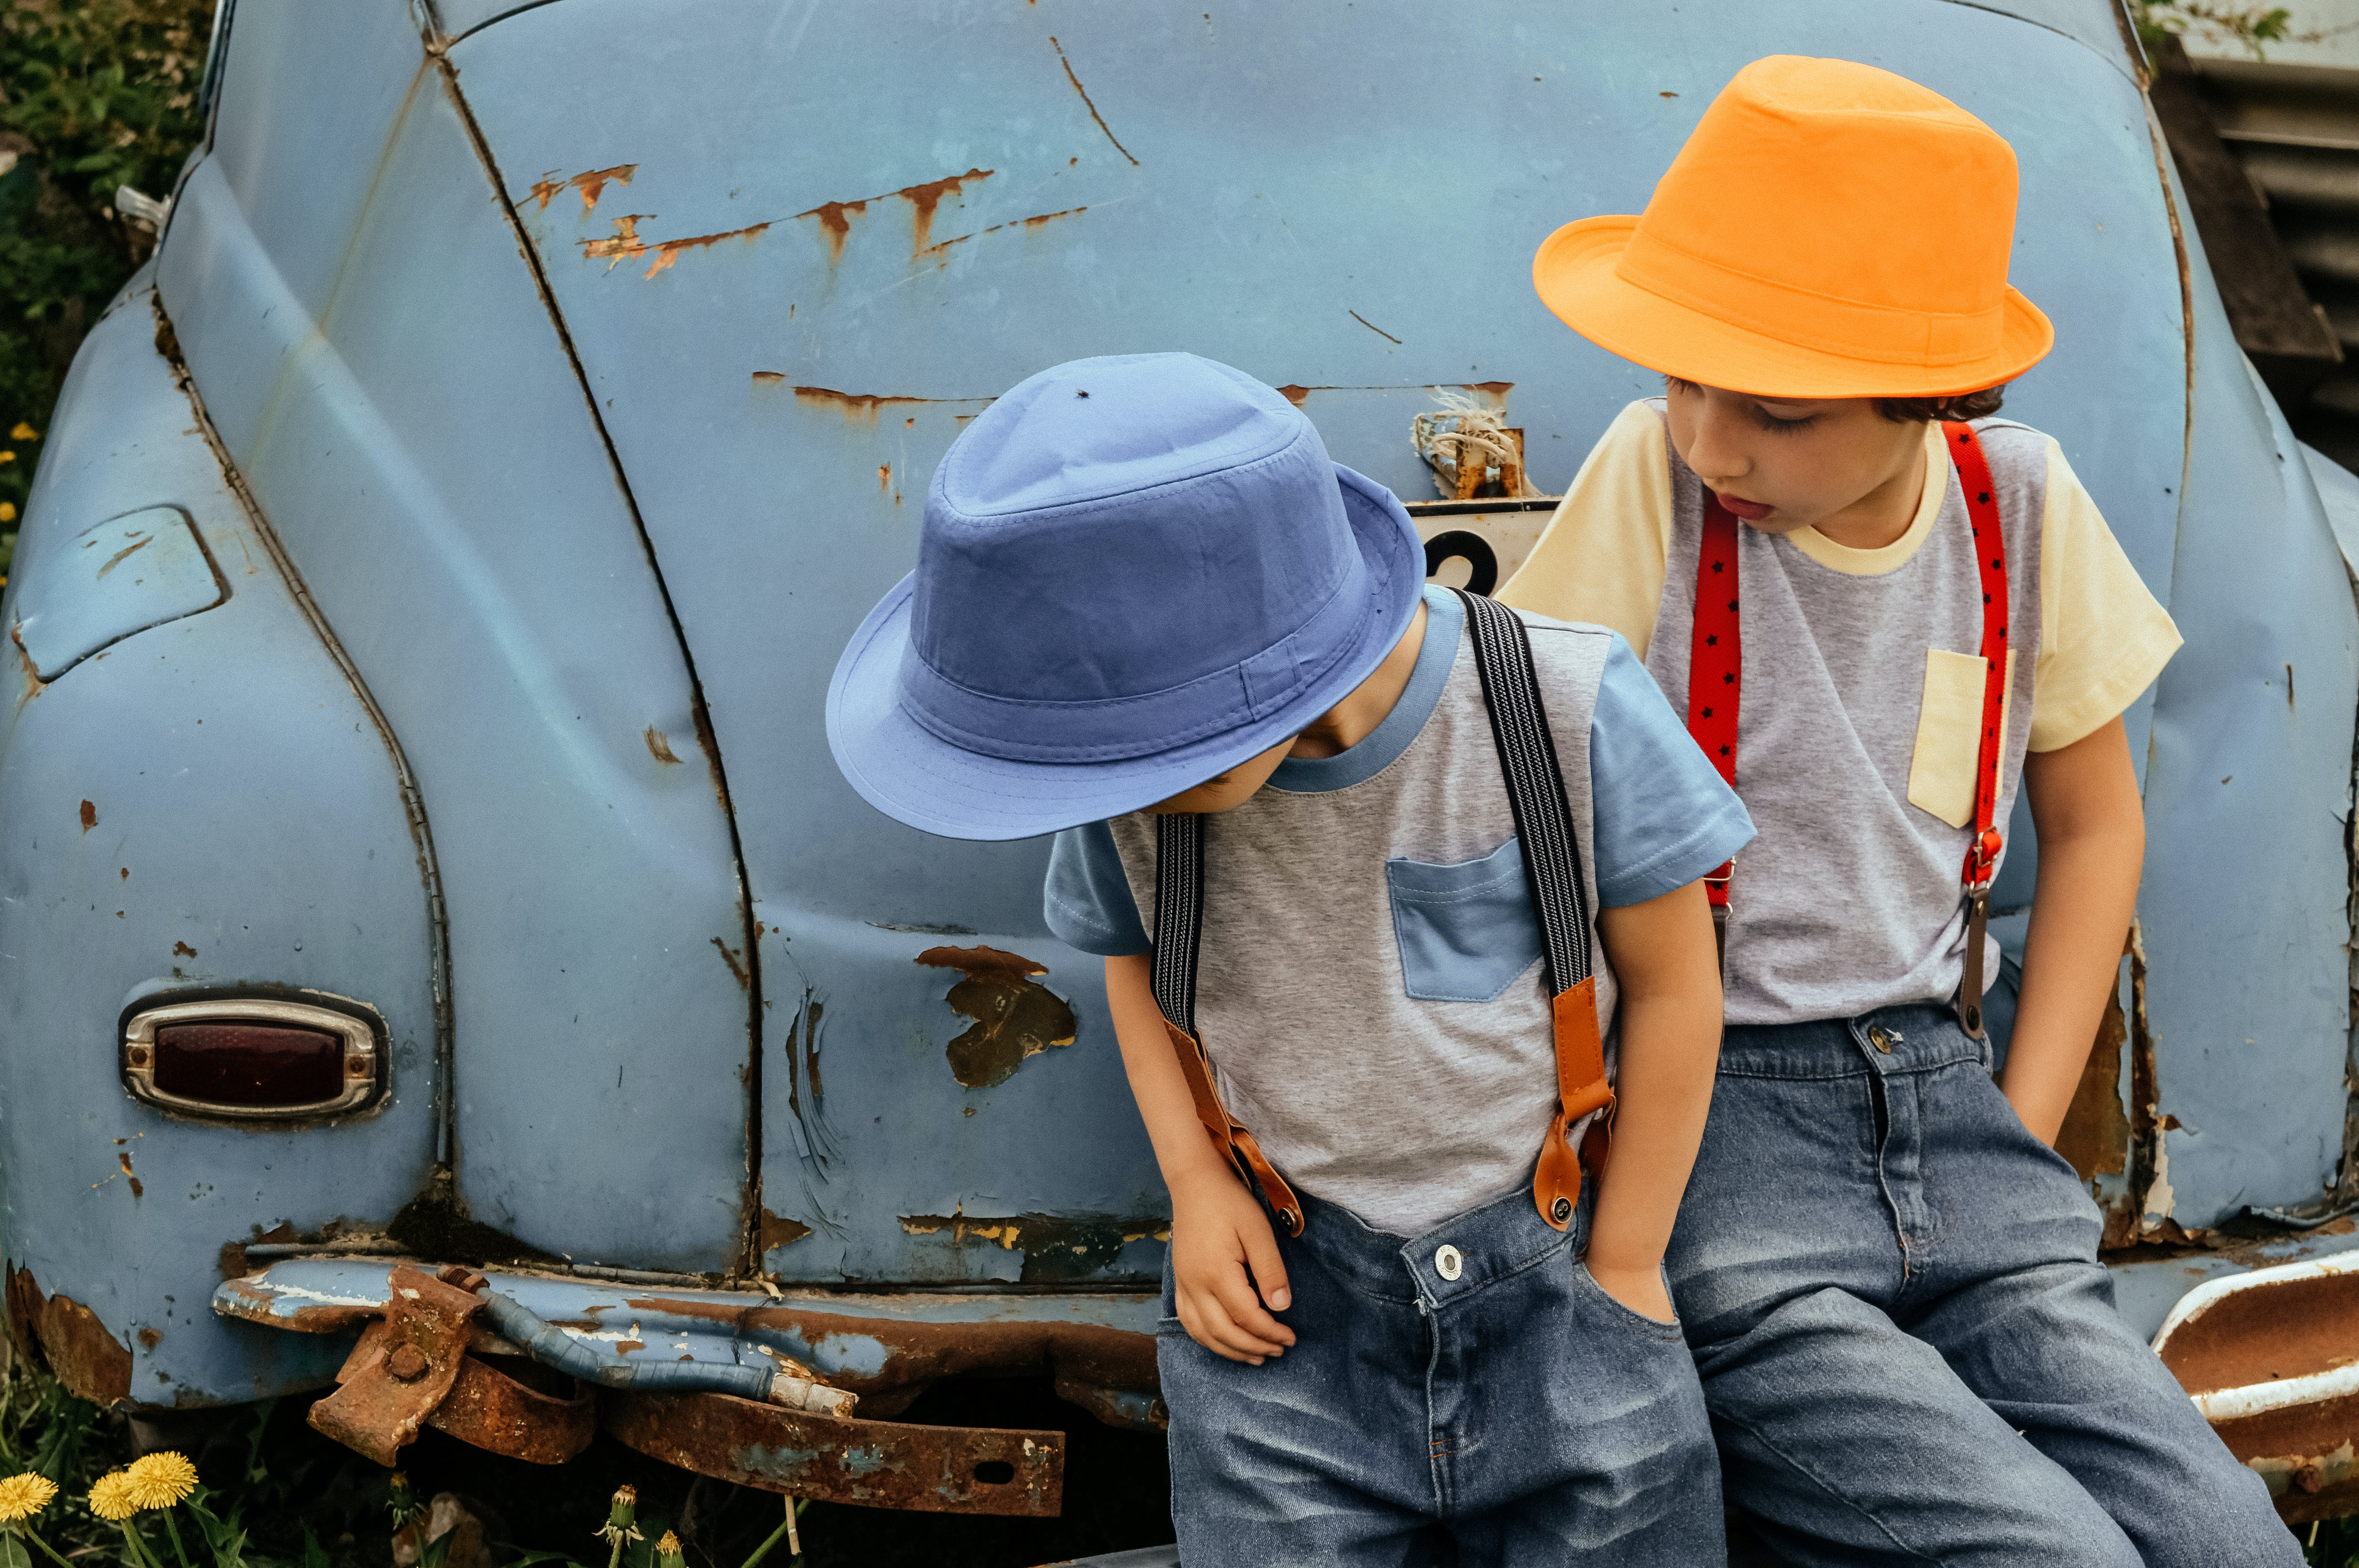 Two Boy in Grey Shirts and Blue Overall Pants Sitting on Blue Car Bumper